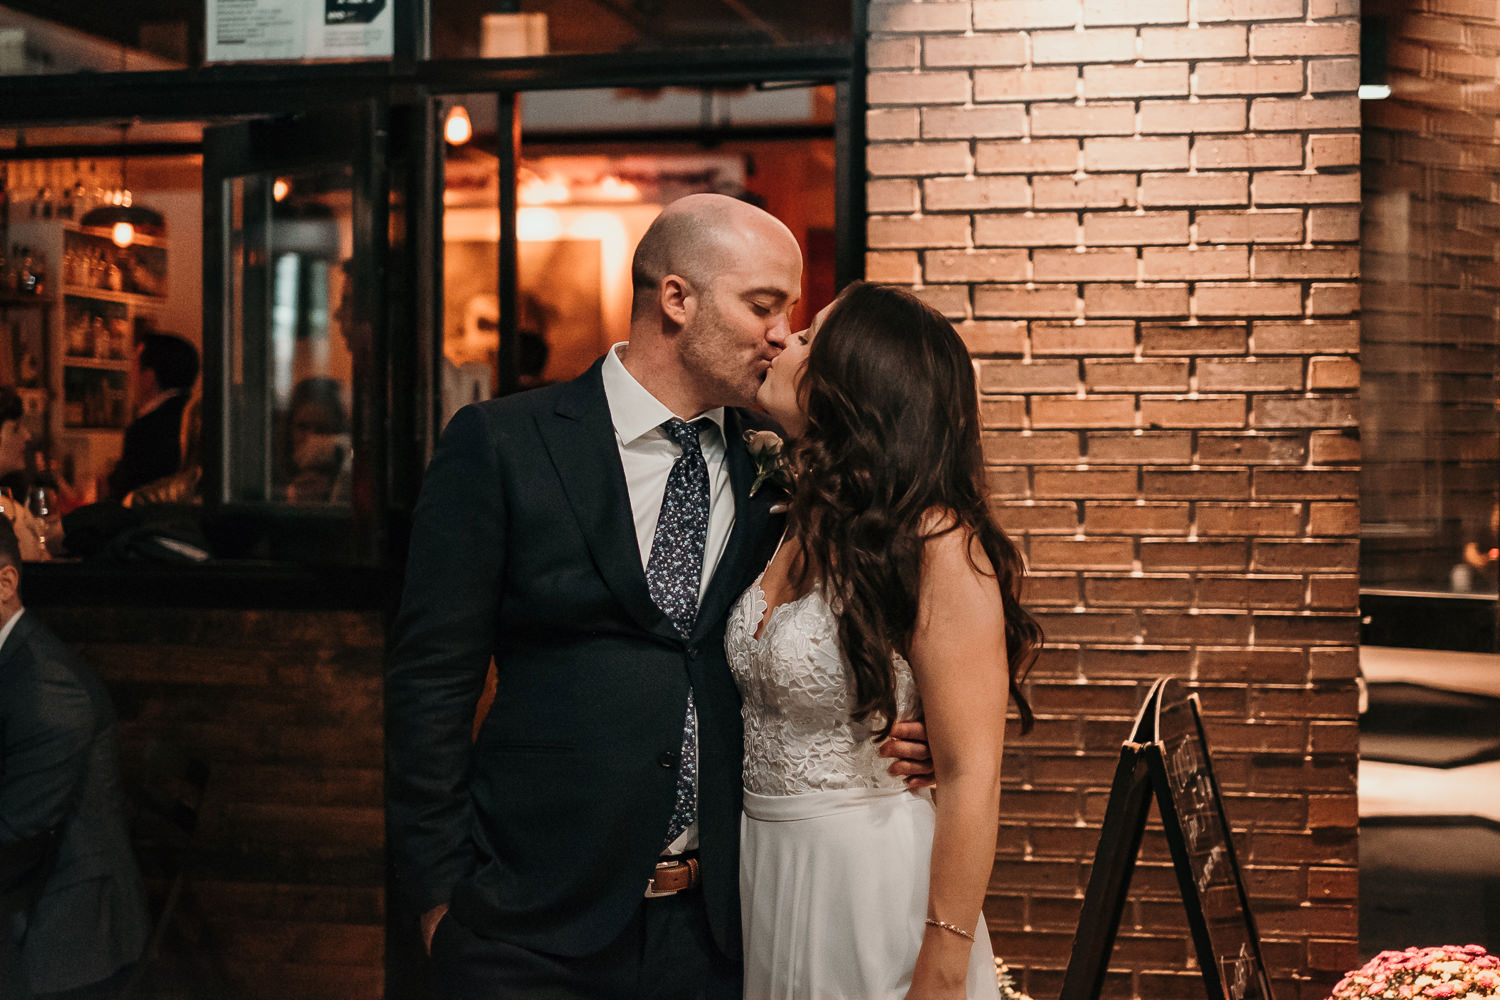 newlyweds kissing outside bar lit by street lights